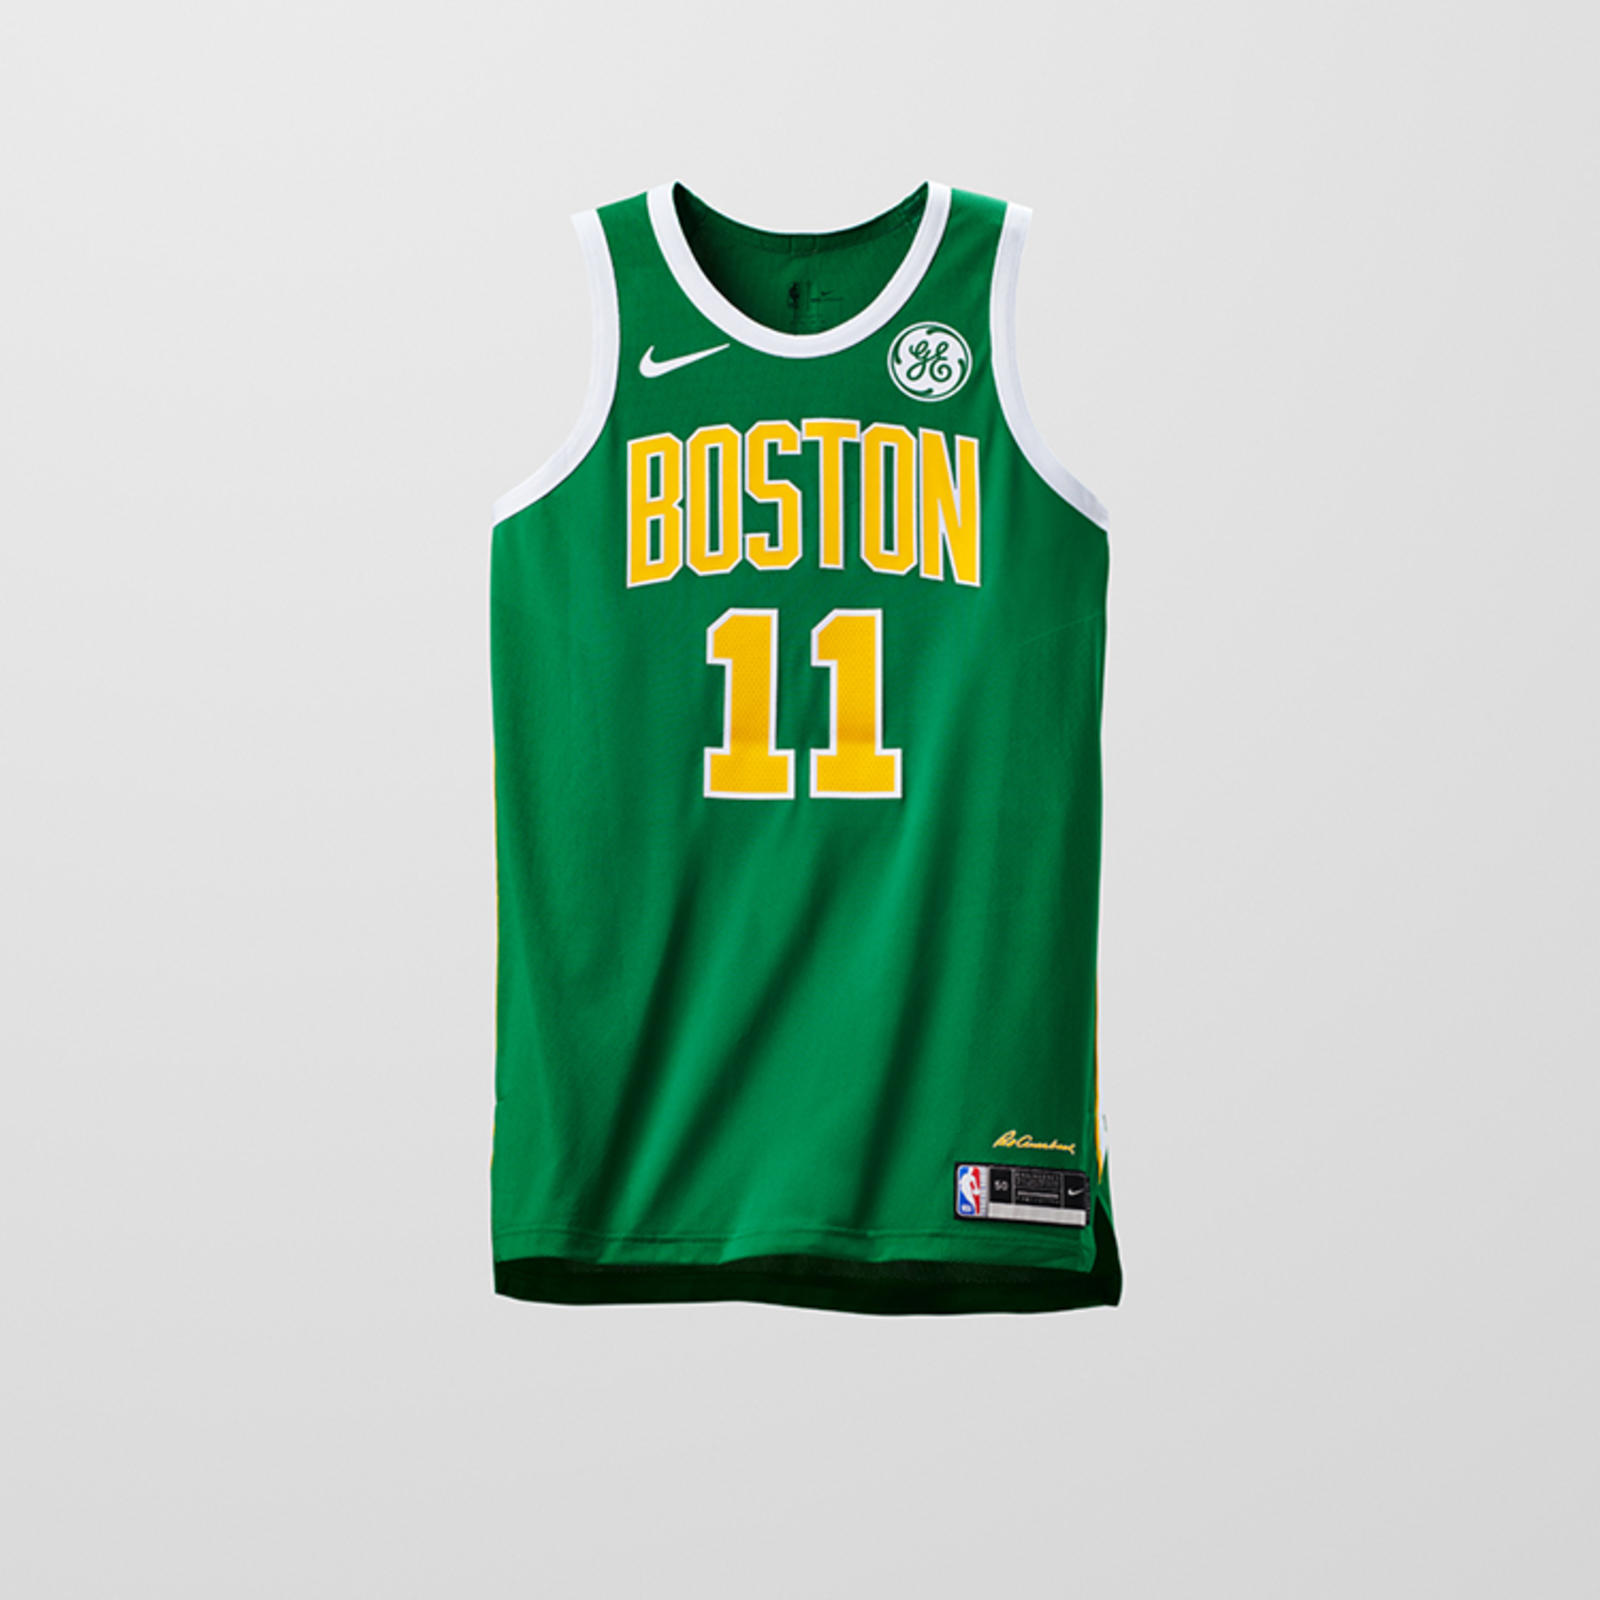 82f2f04ea8d Introducing the Nike x NBA EARNED Edition Uniforms 1